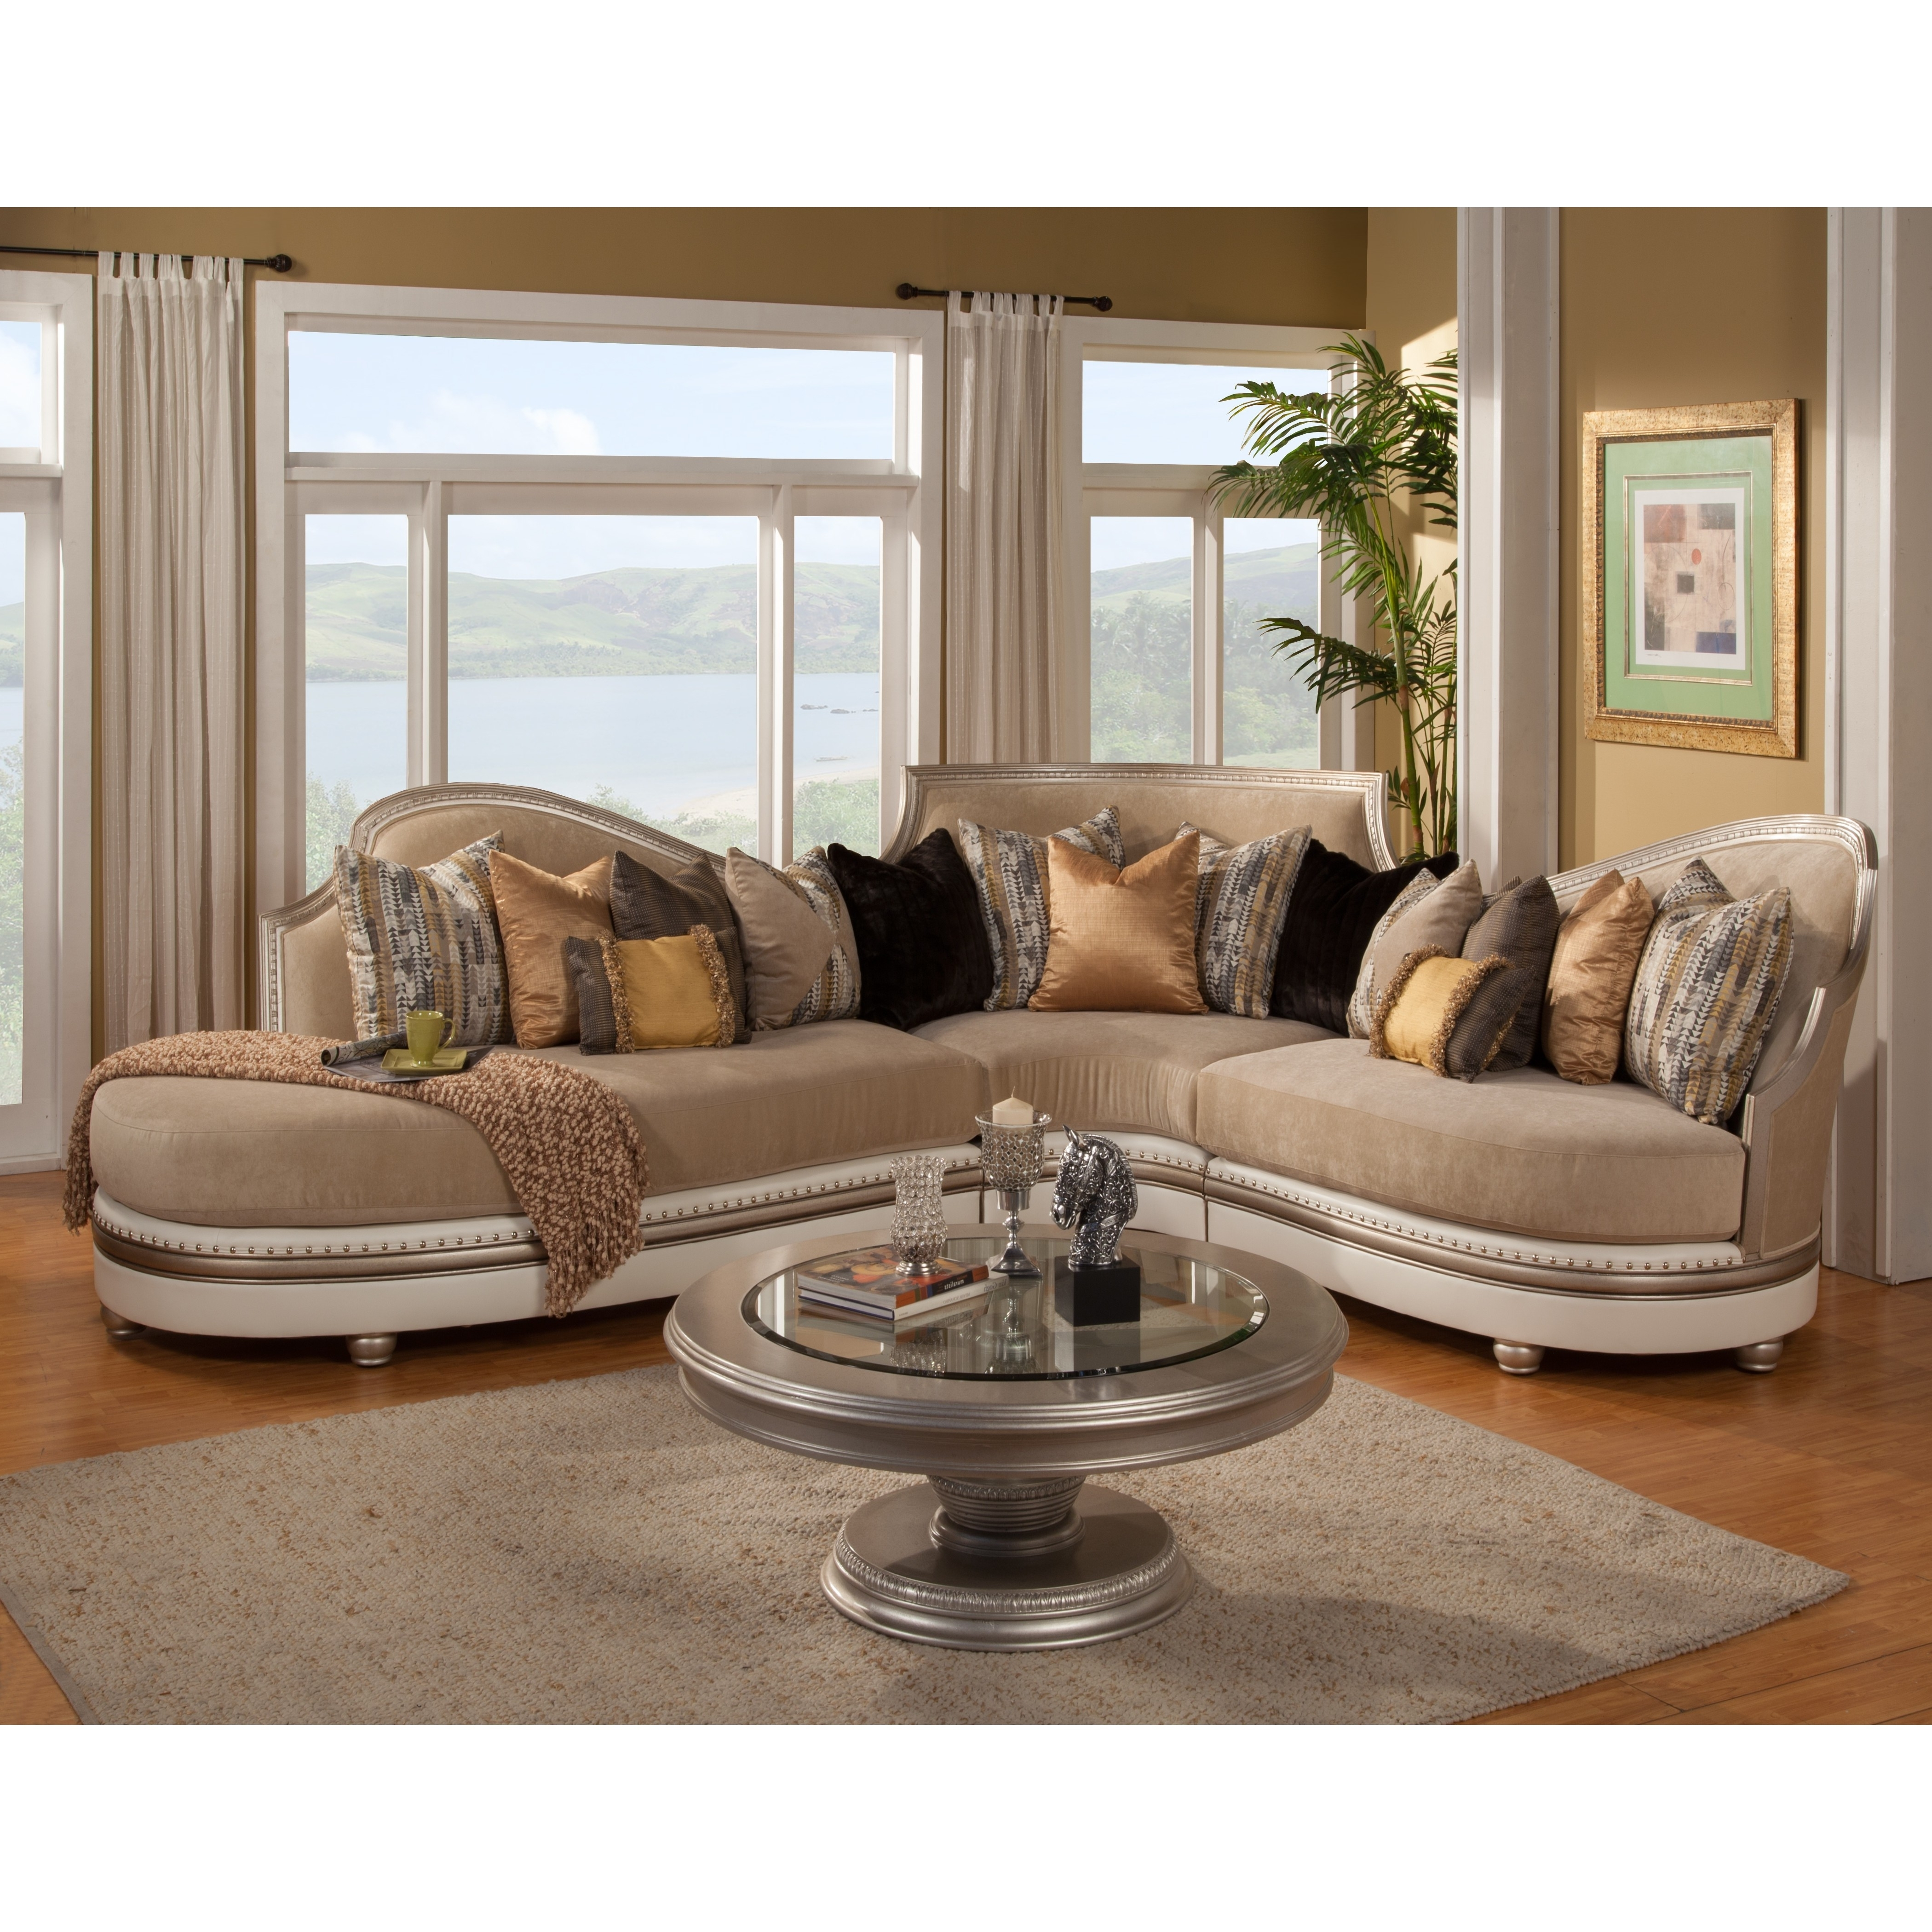 Wayfair Sectional Sofas For Favorite Wayfair Sofa Sectional (View 11 of 20)